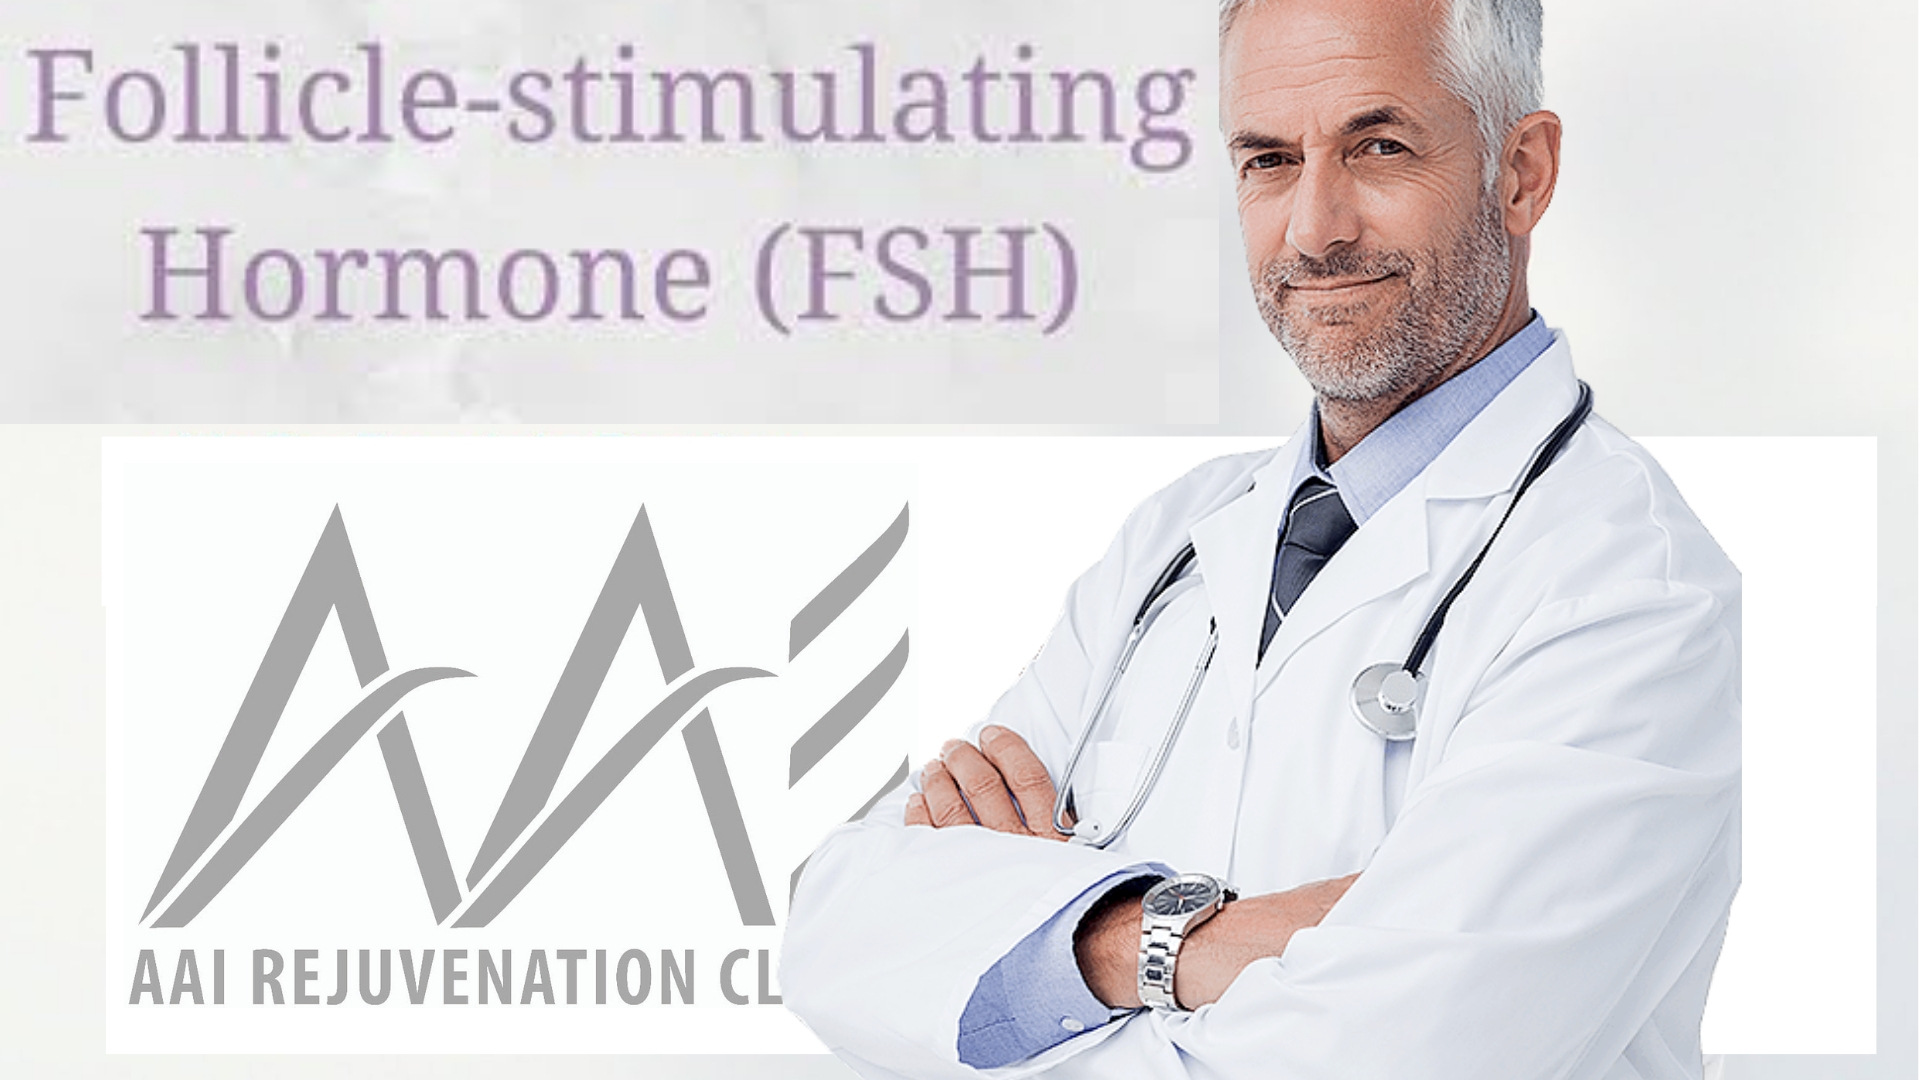 What is Follicle Stimulating Hormone (FSH)?